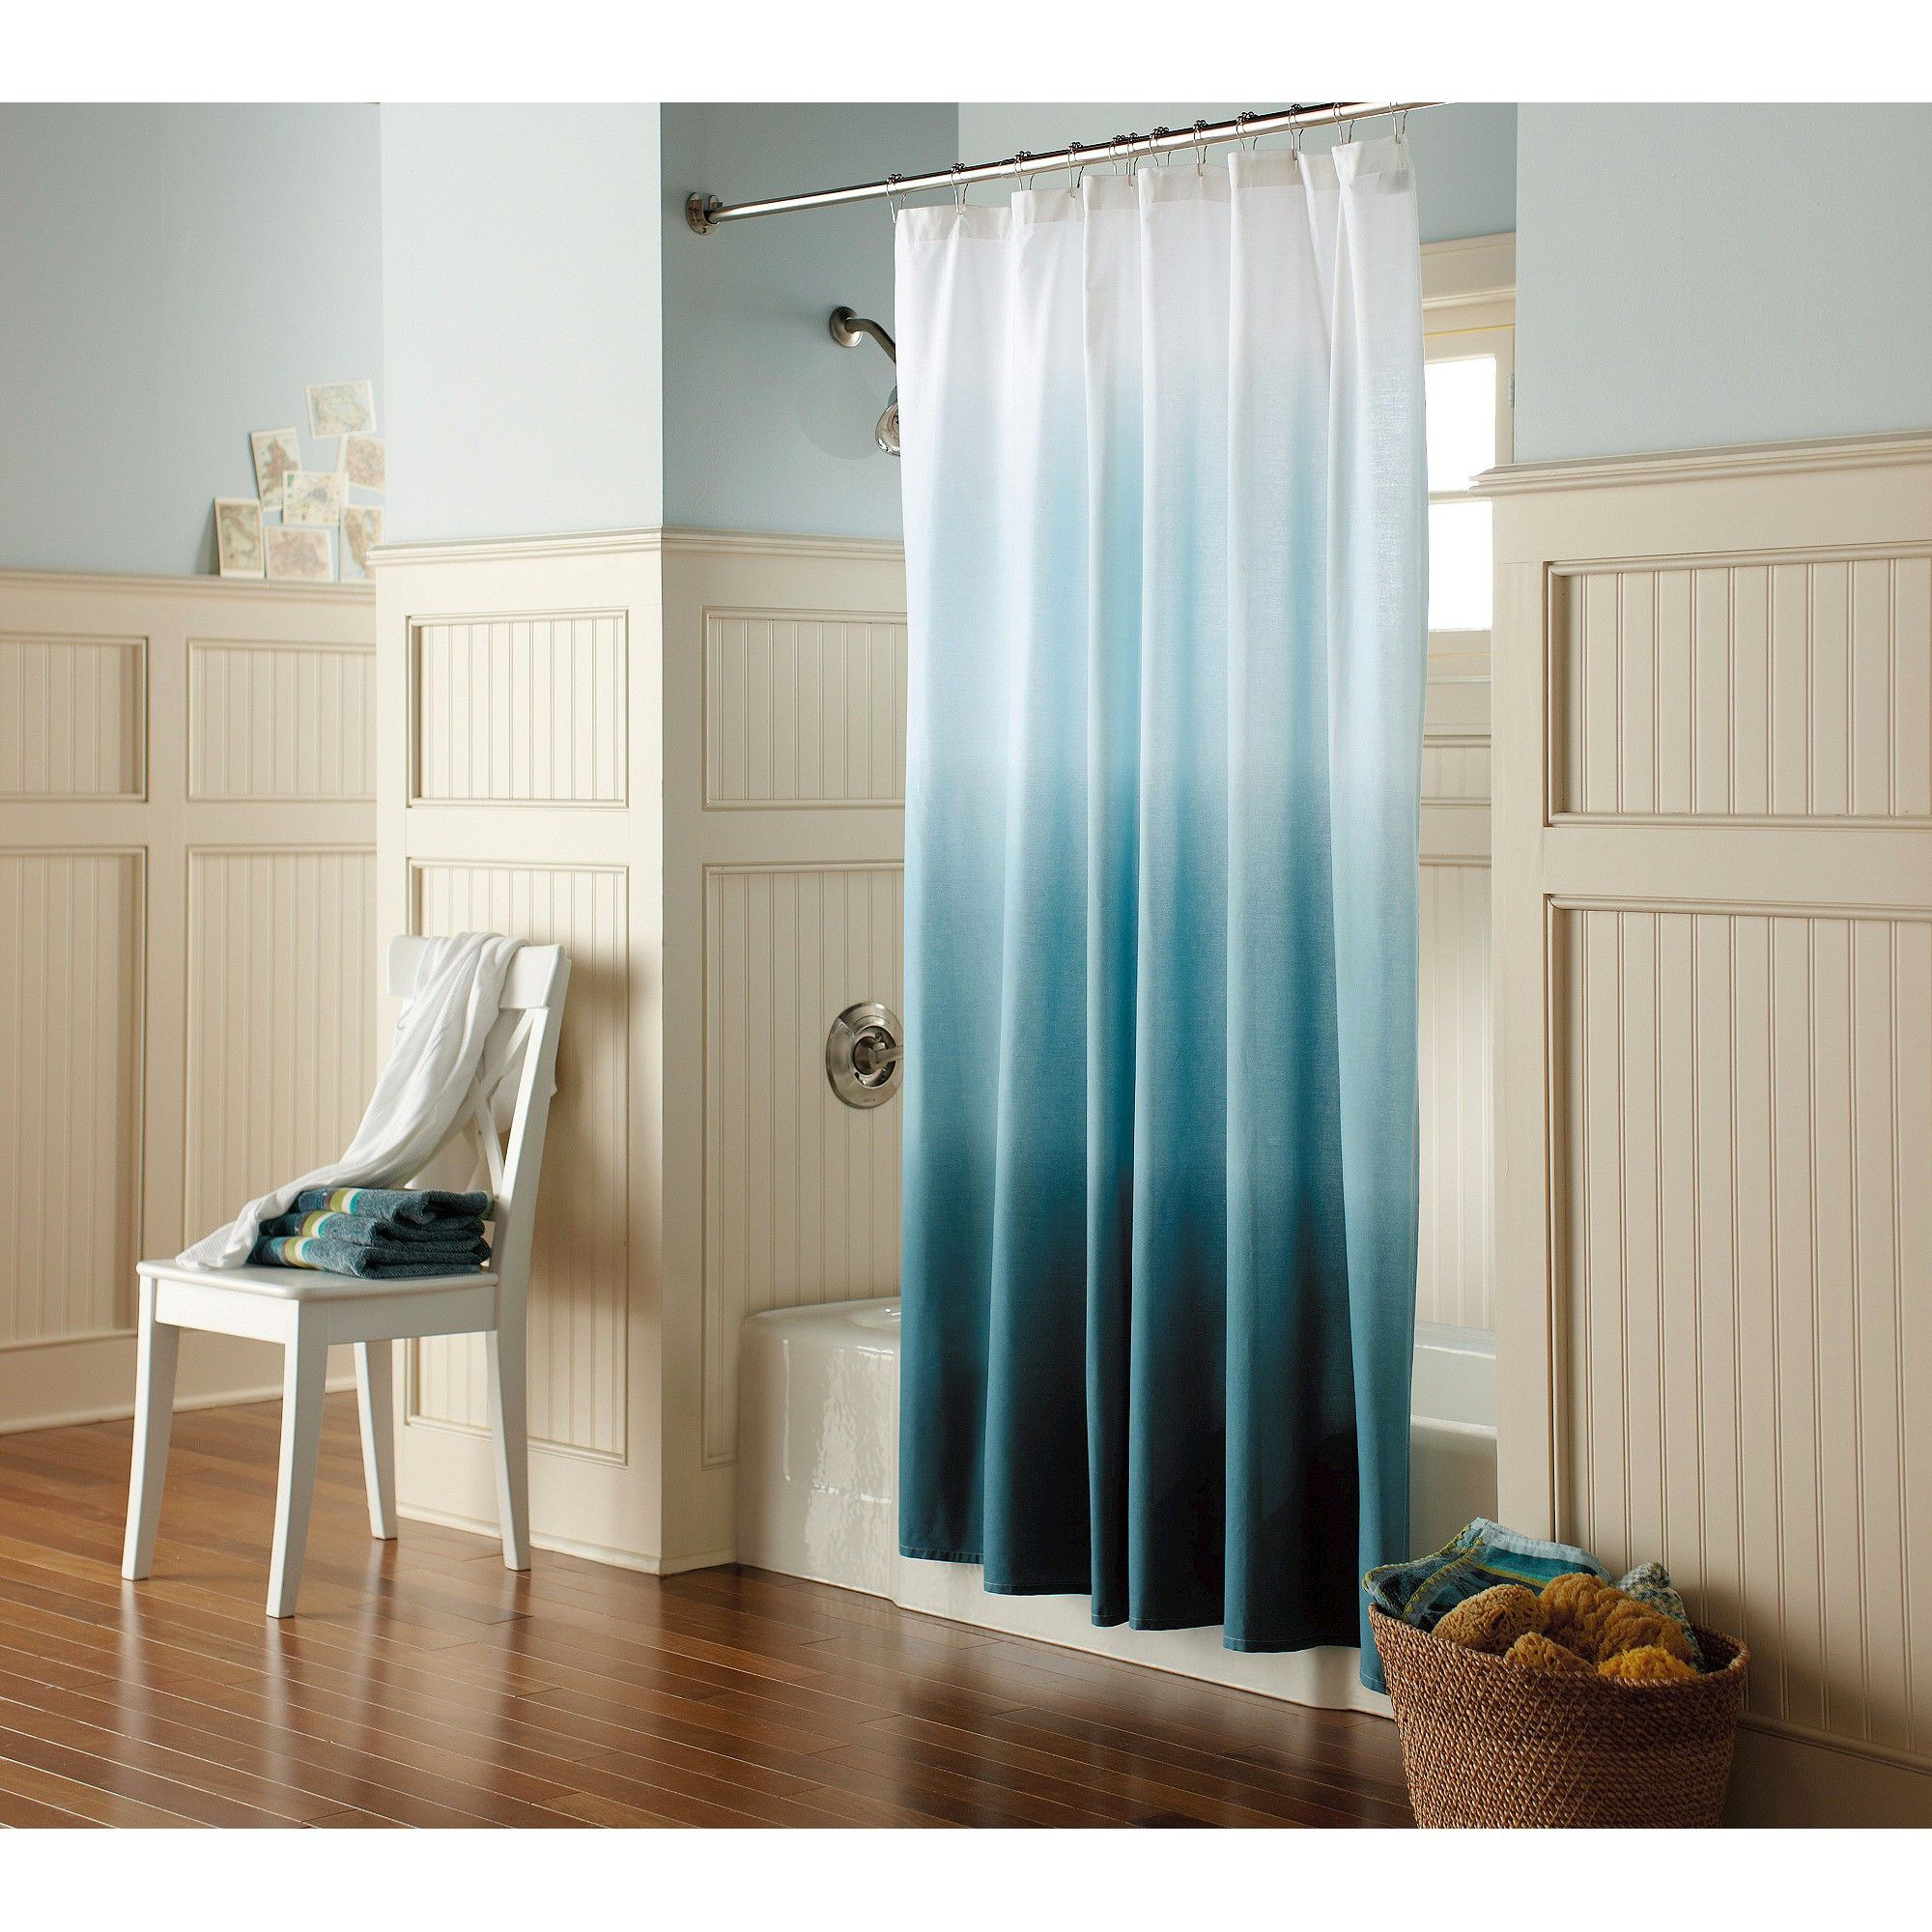 Threshold Ombre Shower Curtain In Blue Brings The Beauty Of Coastal Calm To Your Bathroom Decor Made 100 Cotton With A 120 Thread Count